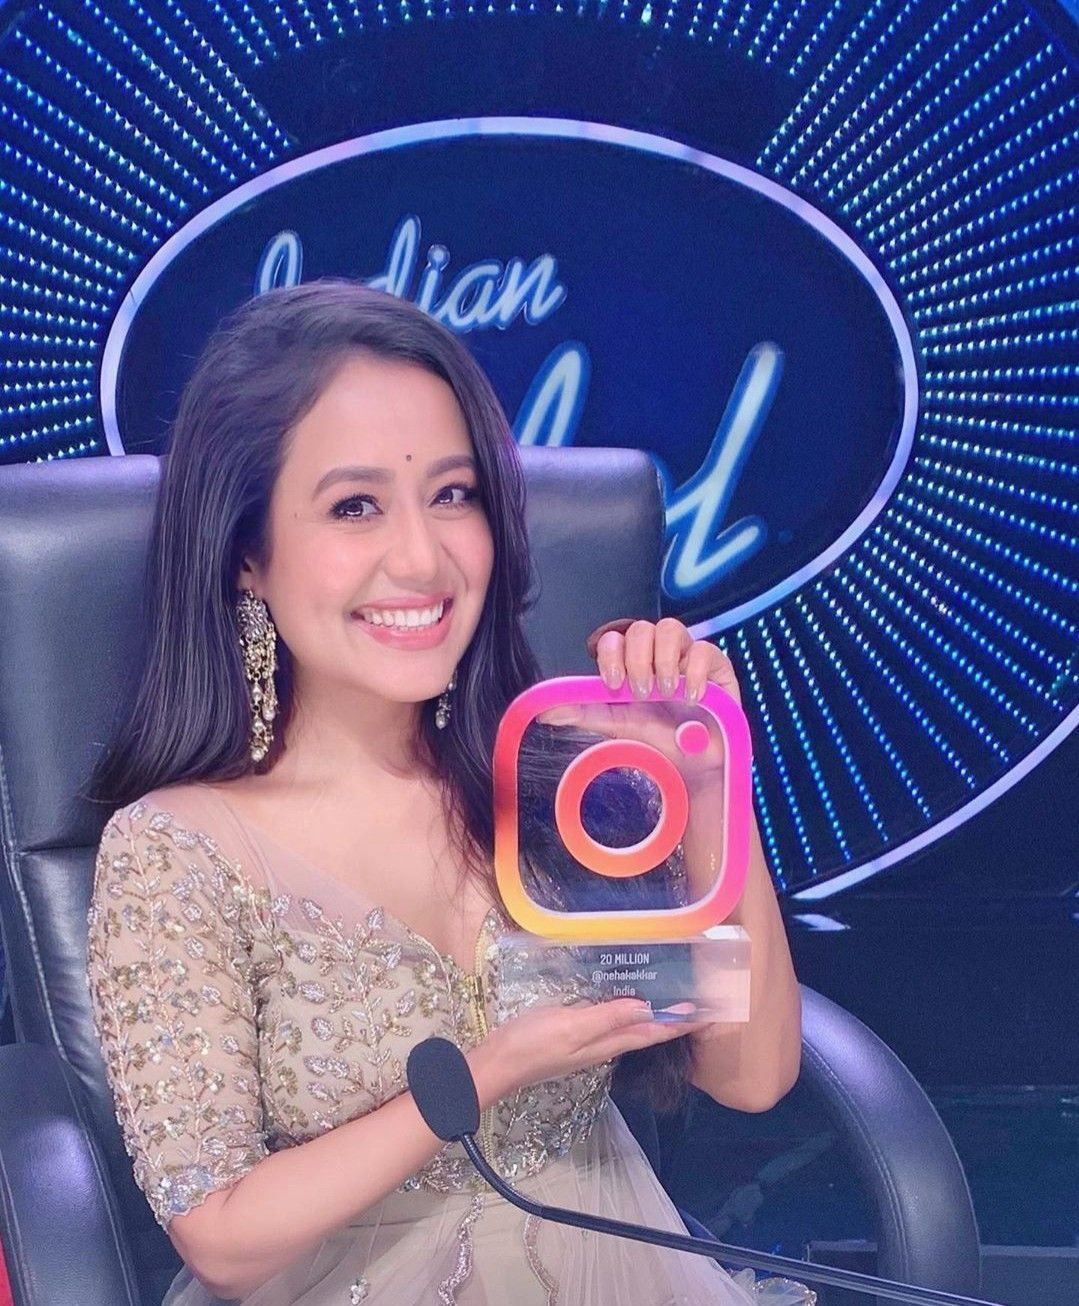 Pin by 🥰ਸ਼aਵia ਖaਤੂun🥰 on Neha kakkar (With images